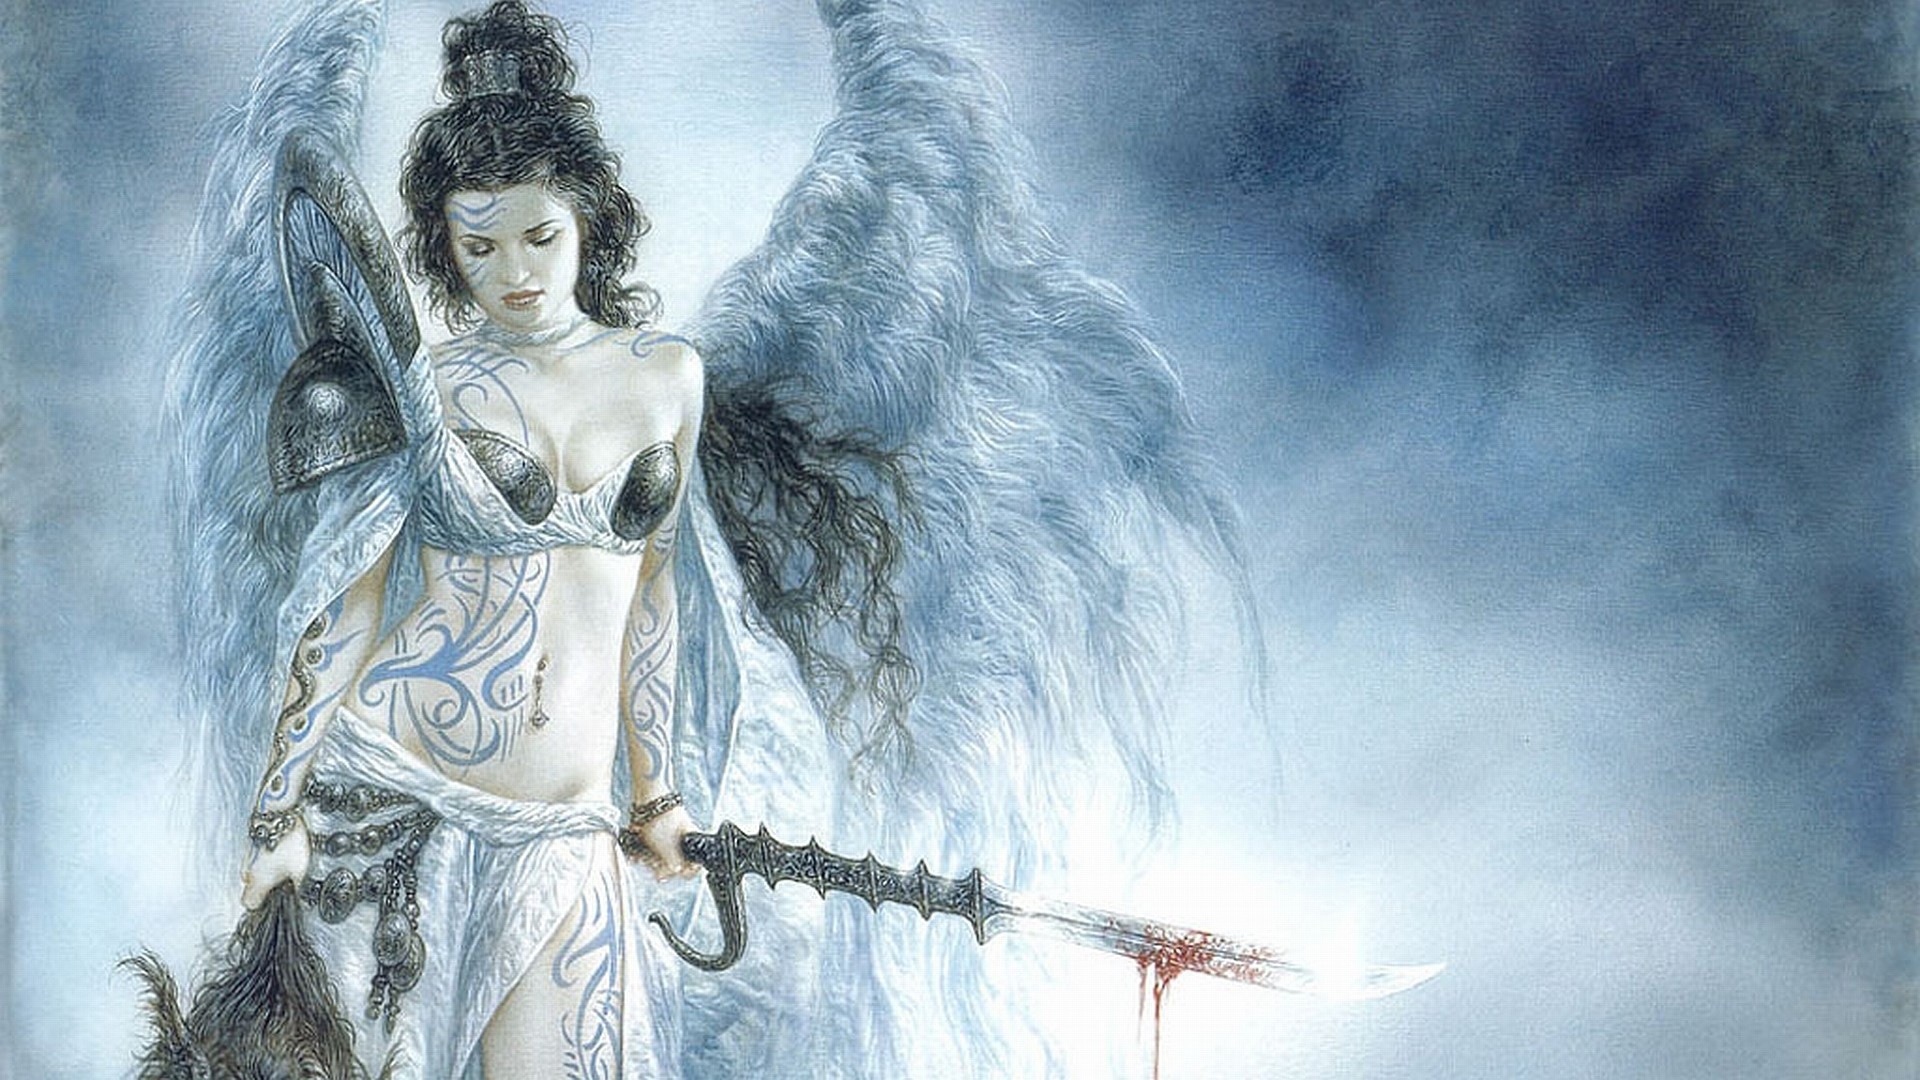 1920x1080 Luis Royo images Angel Warrior HD wallpaper and background photos